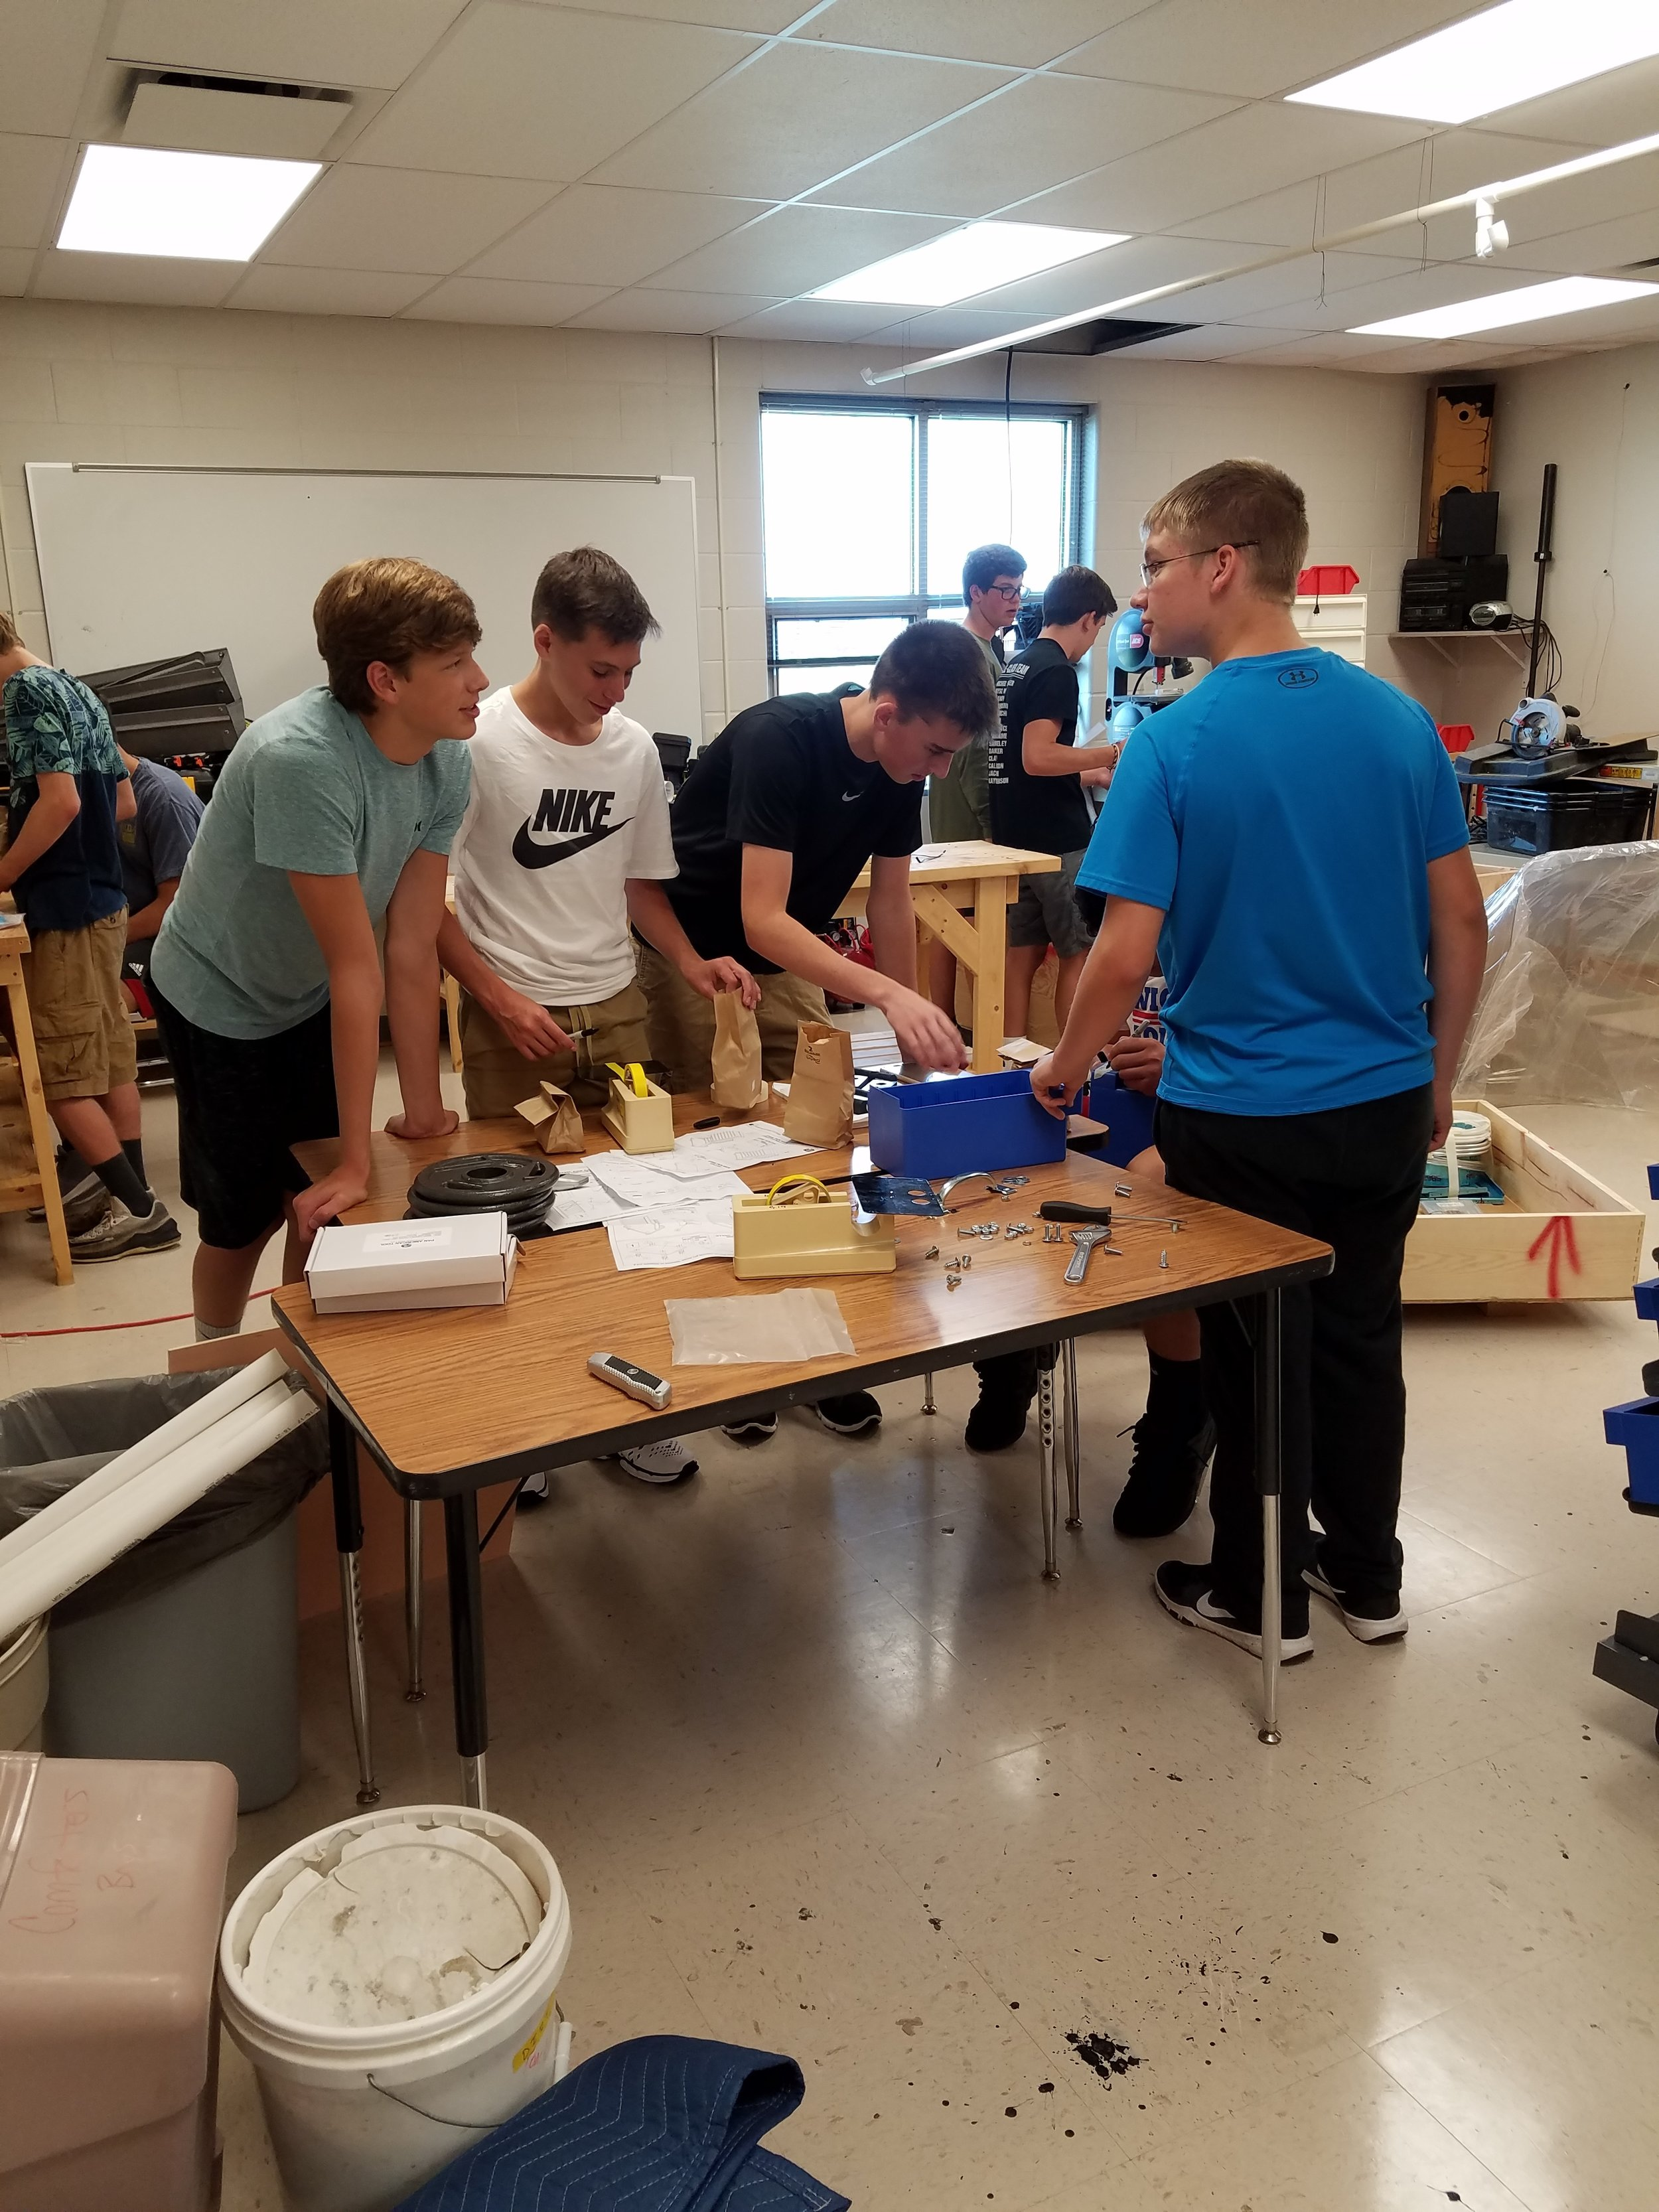 Students work together on engineering project.